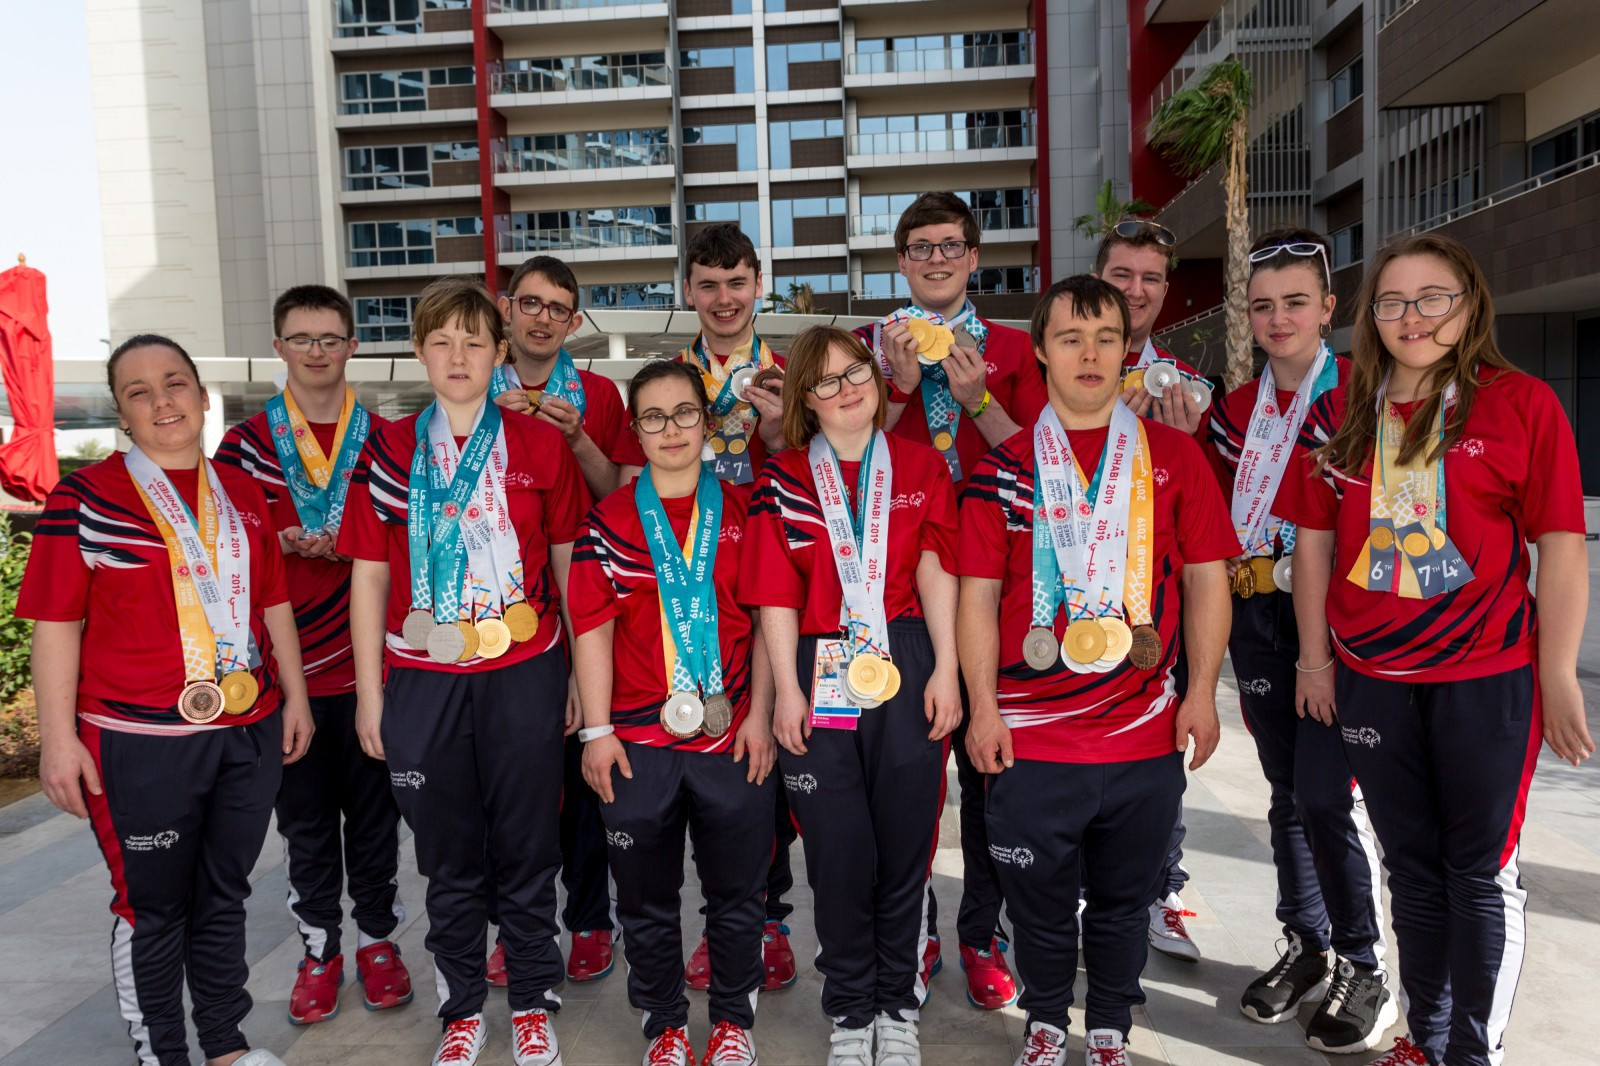 More than 2,000 athletes were expected to compete at the 2021 Special Olympic Great Britain National Summer Games ©Special Olympics GB